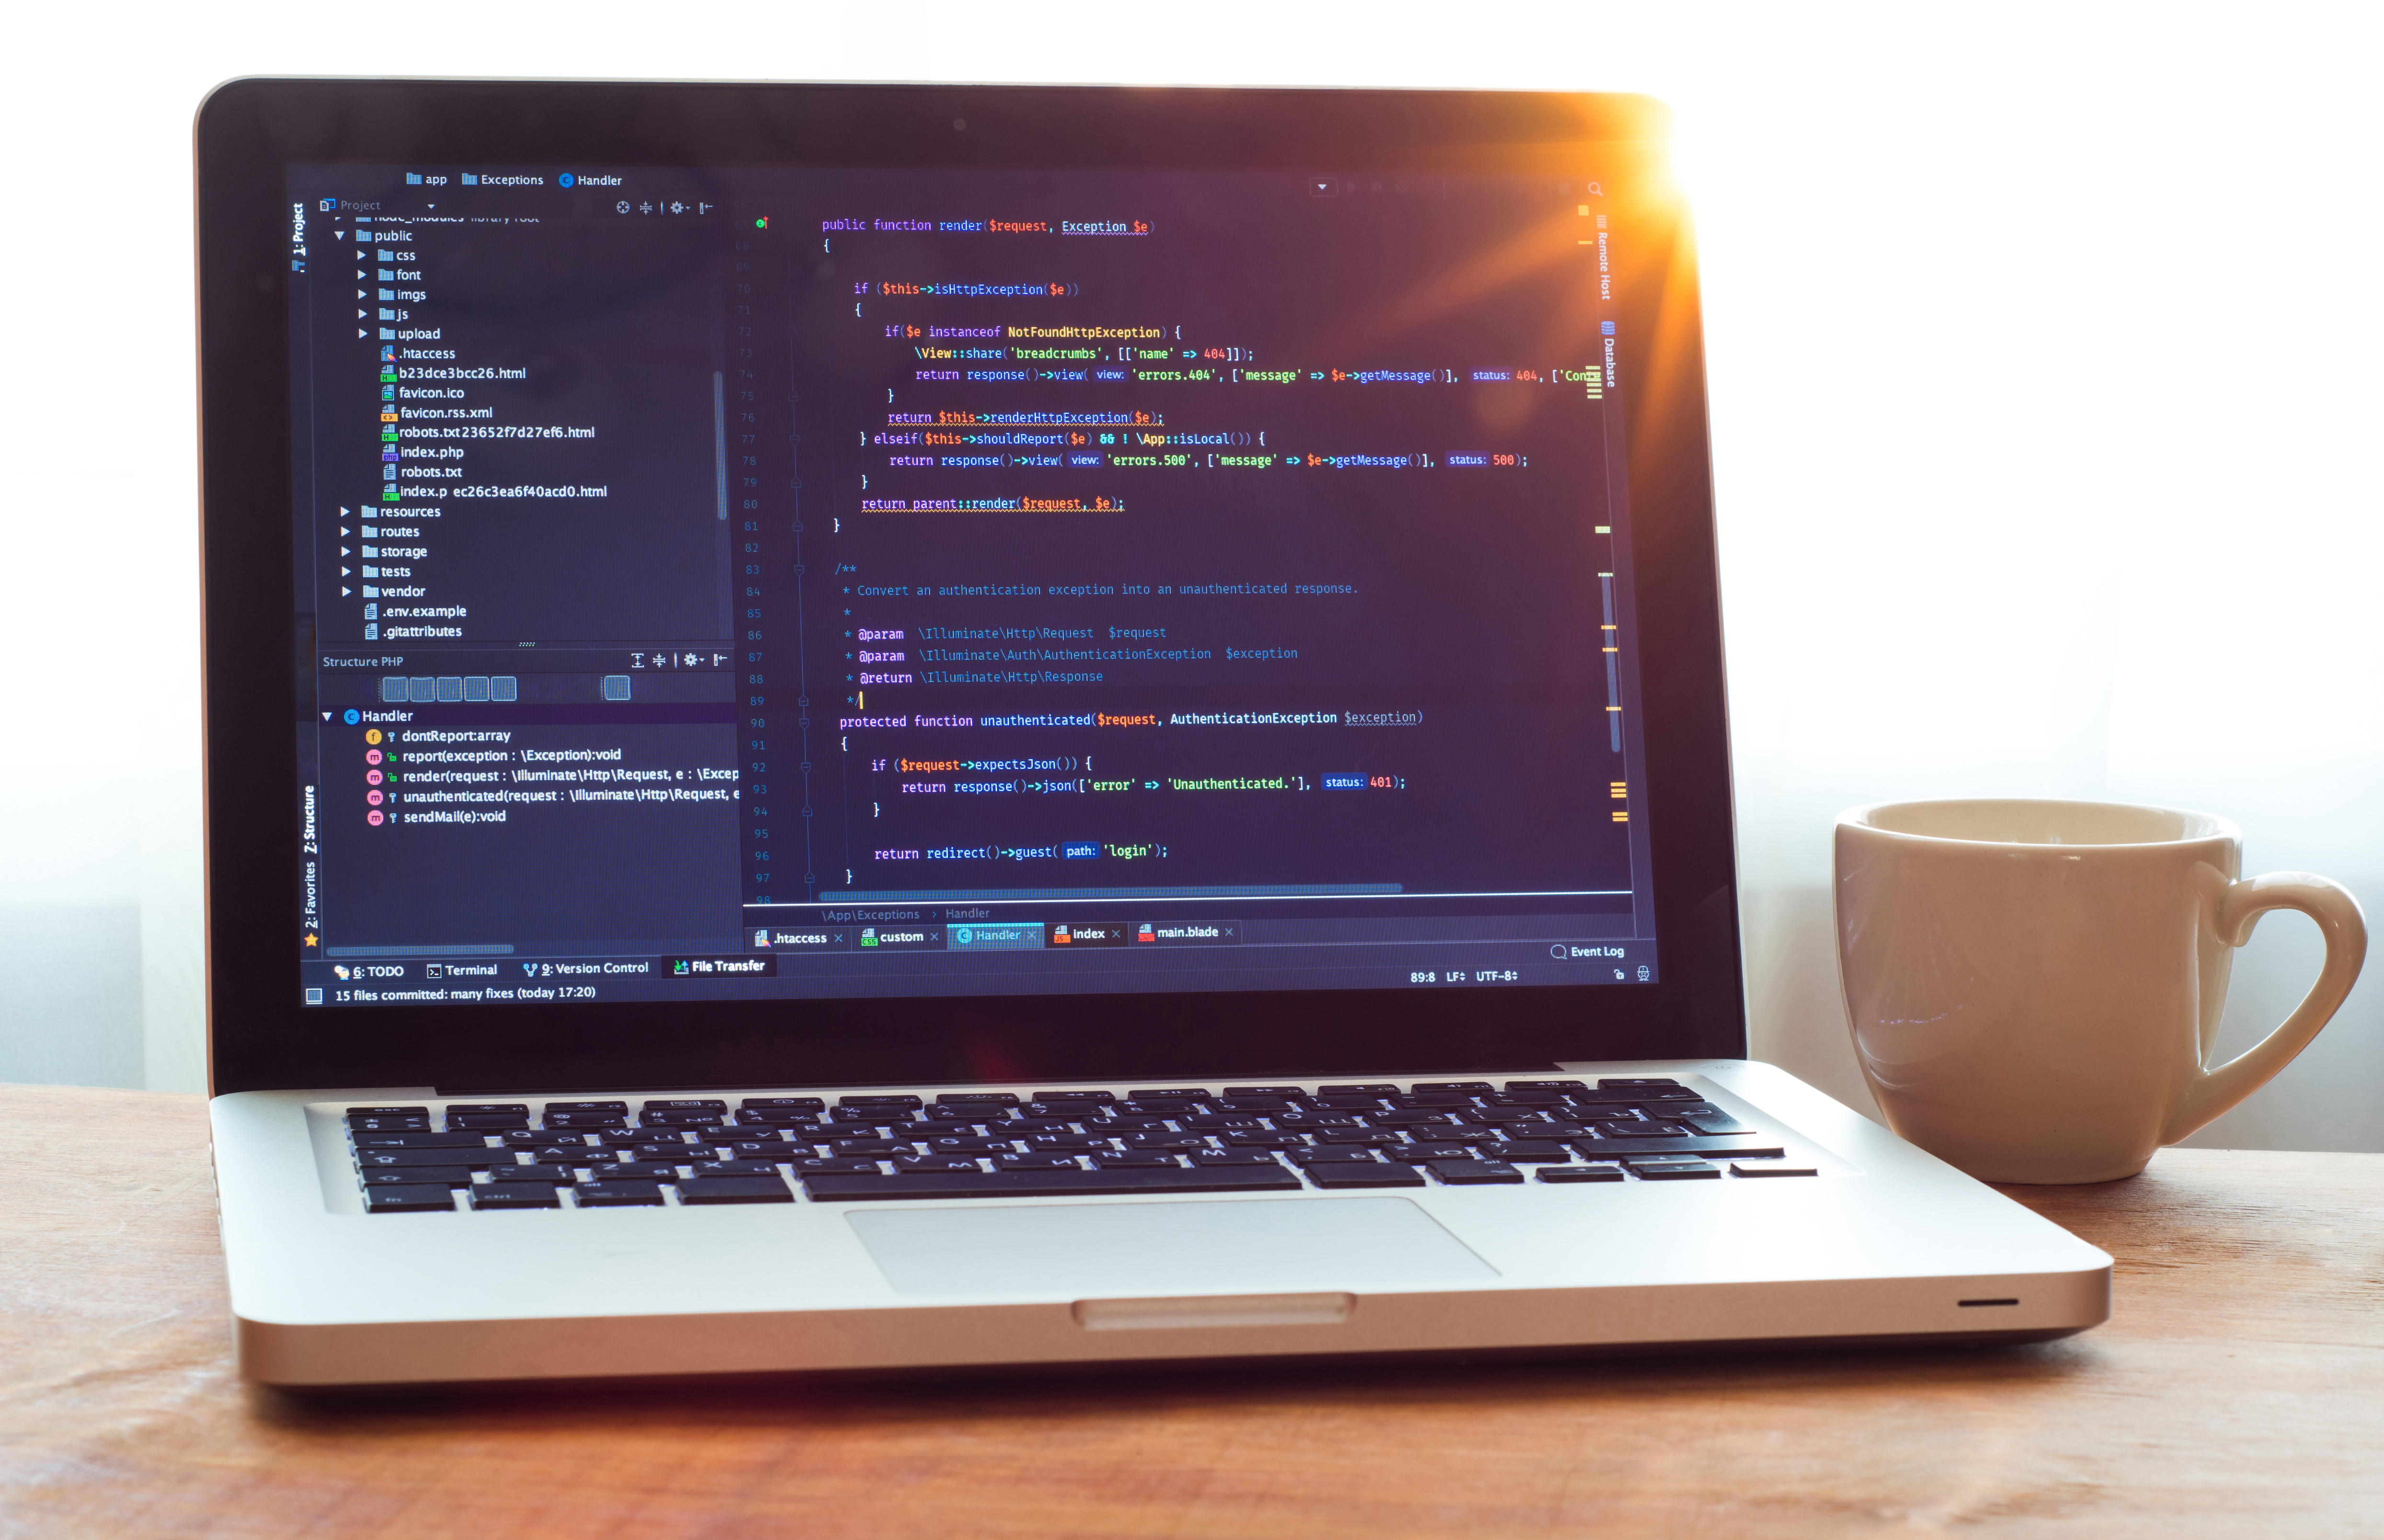 Computer code on laptop (web developing) and white mug in sunlight, working place